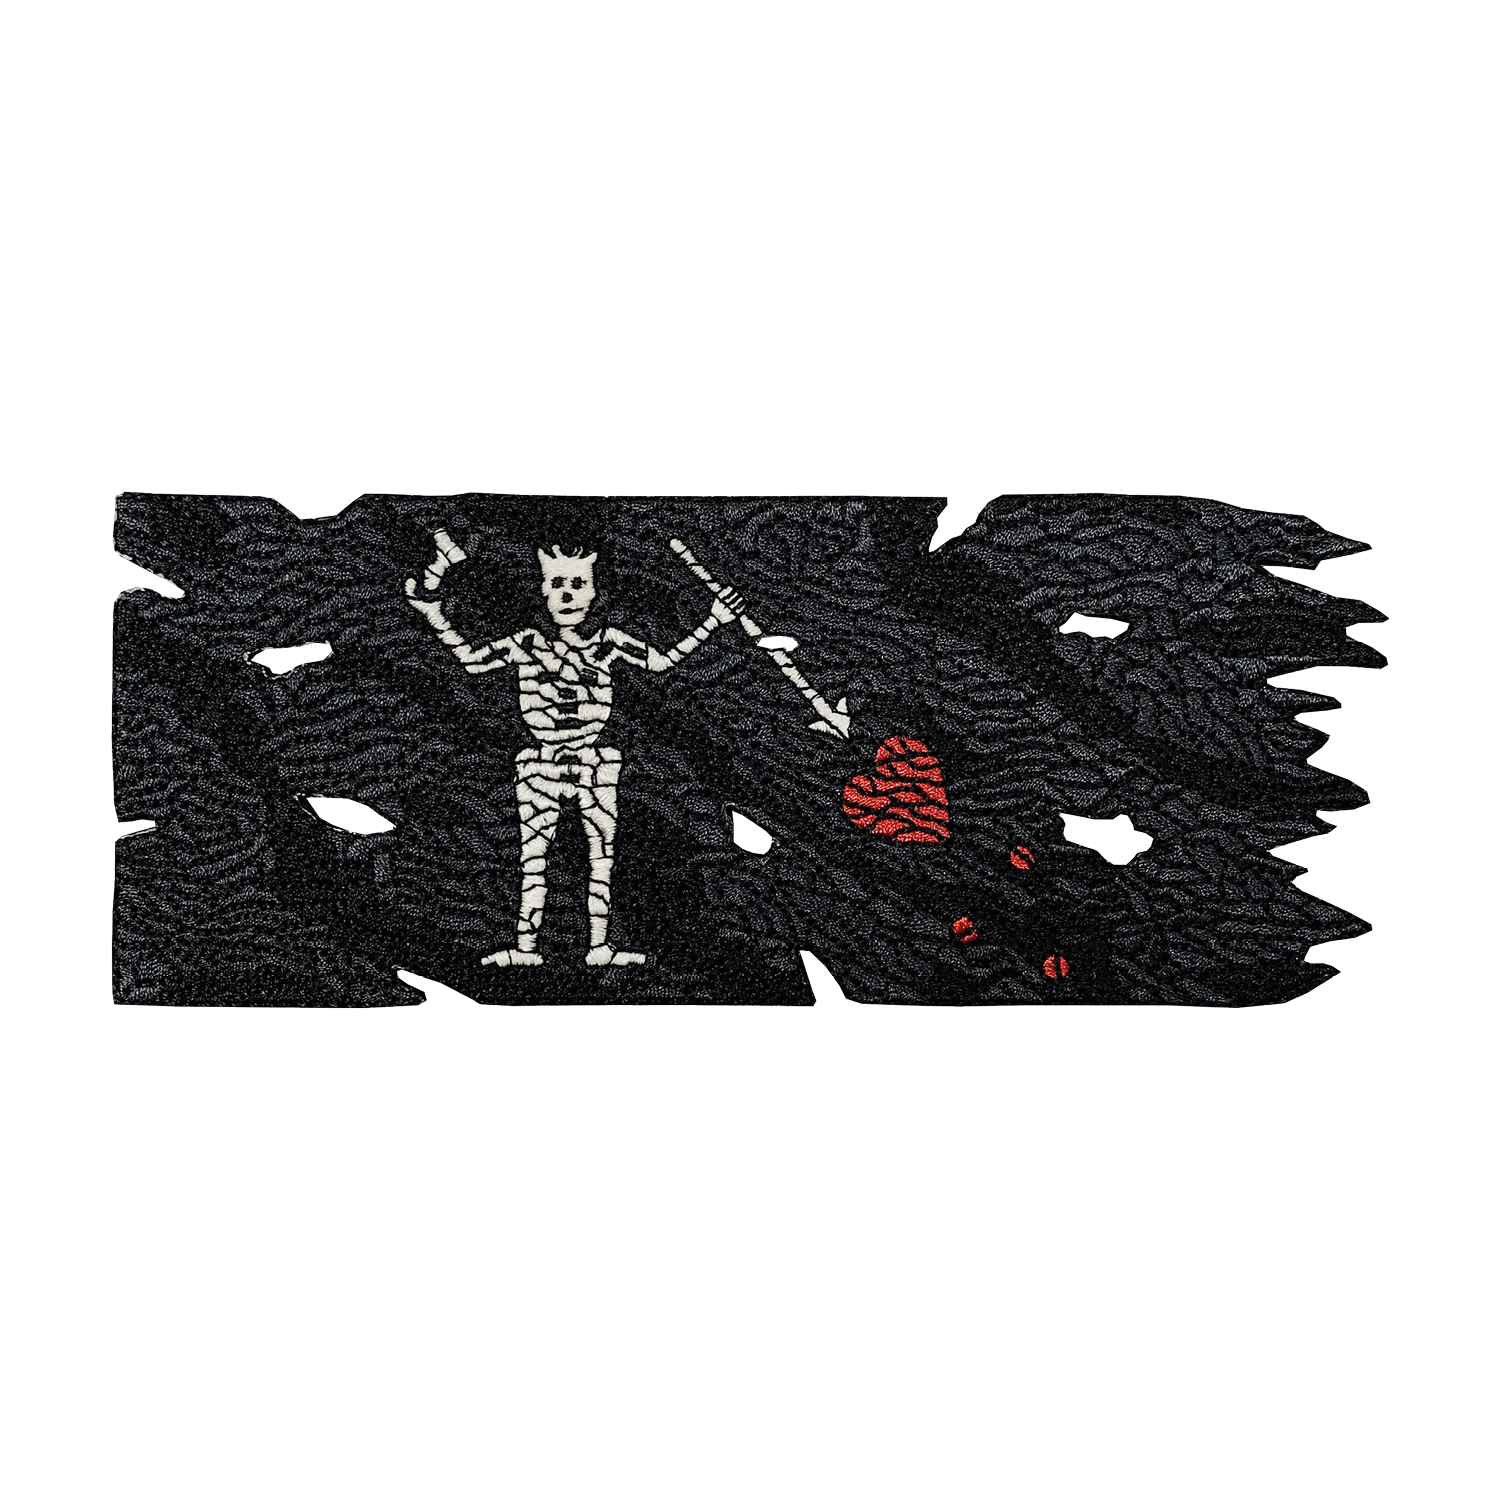 Blackbeard Pirate Flag [v2] Patch